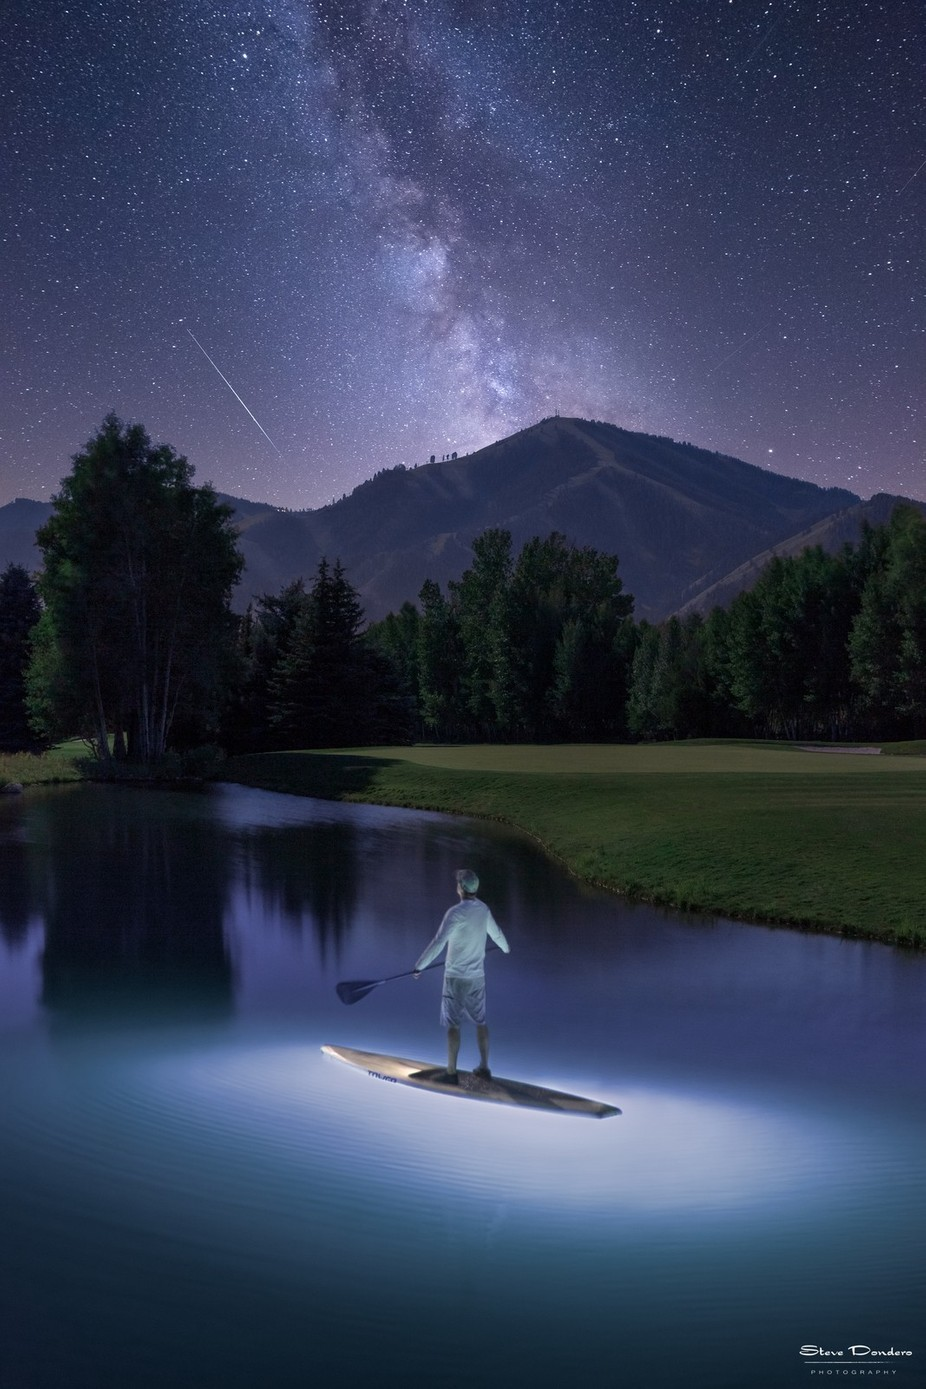 SUP and Stars by sdondero - Zen Photo Contest